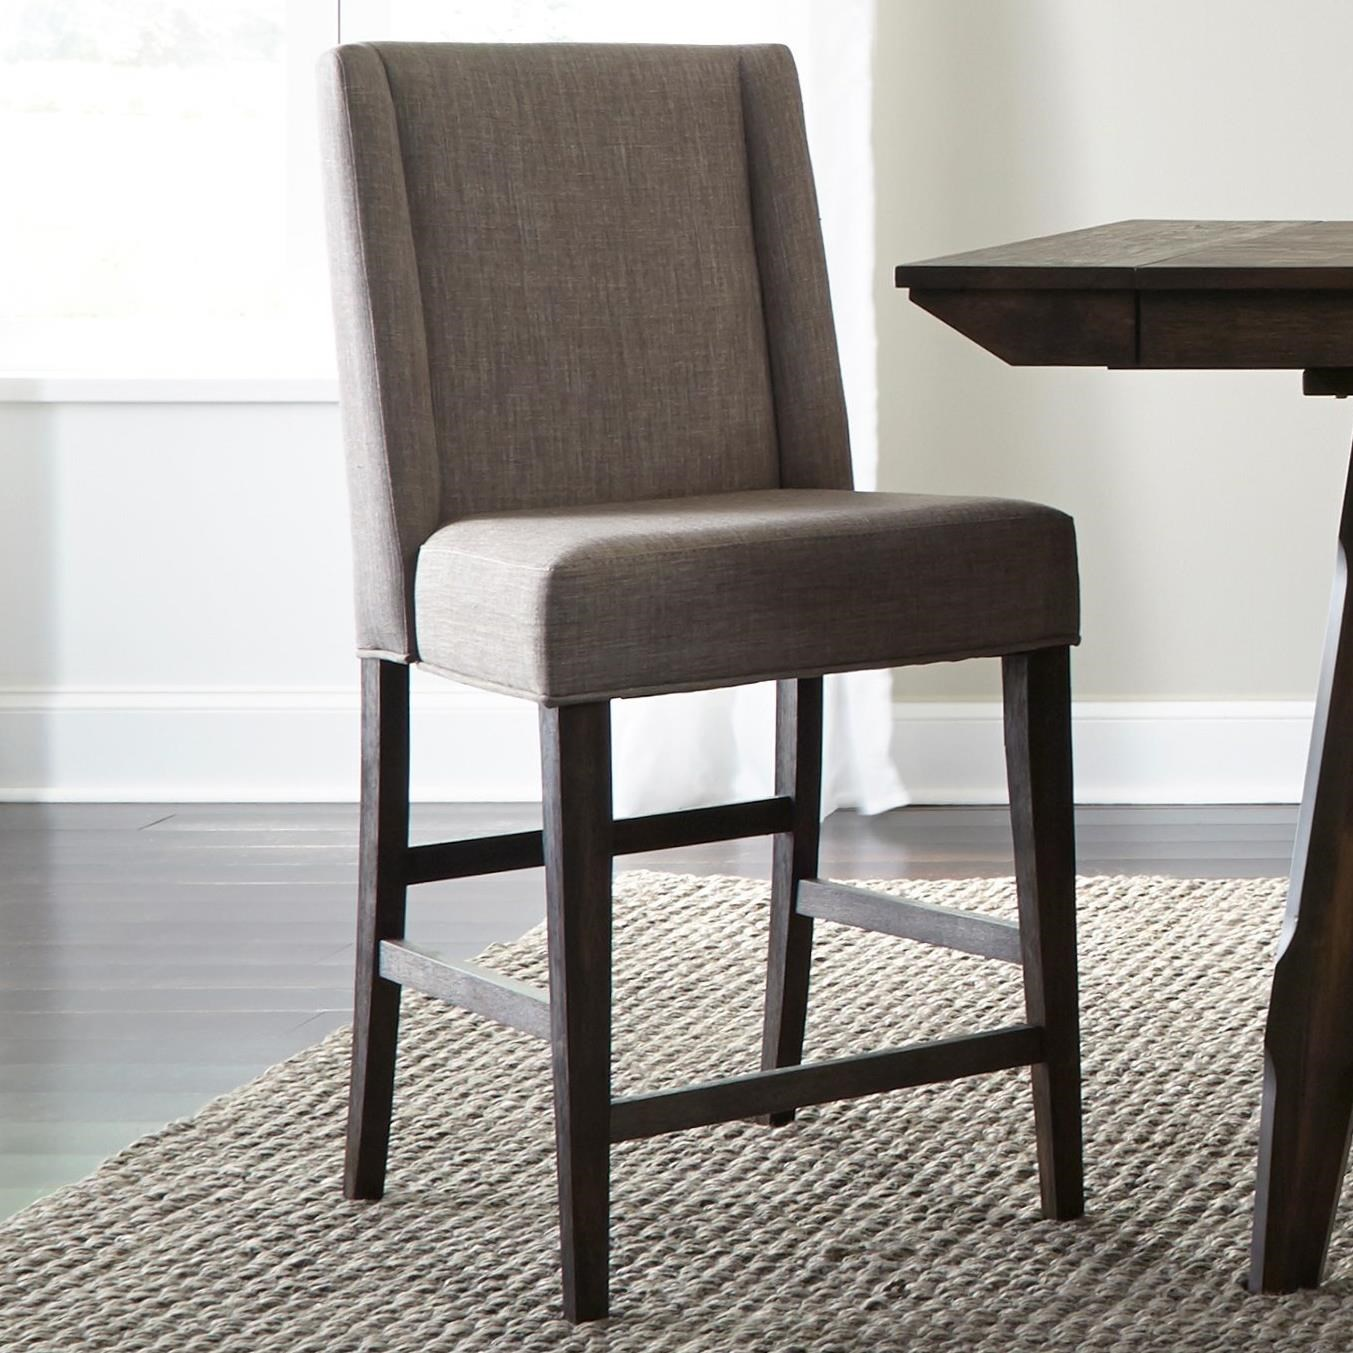 upholstered counter chairs cowhide chair covers liberty furniture double bridge contemporary